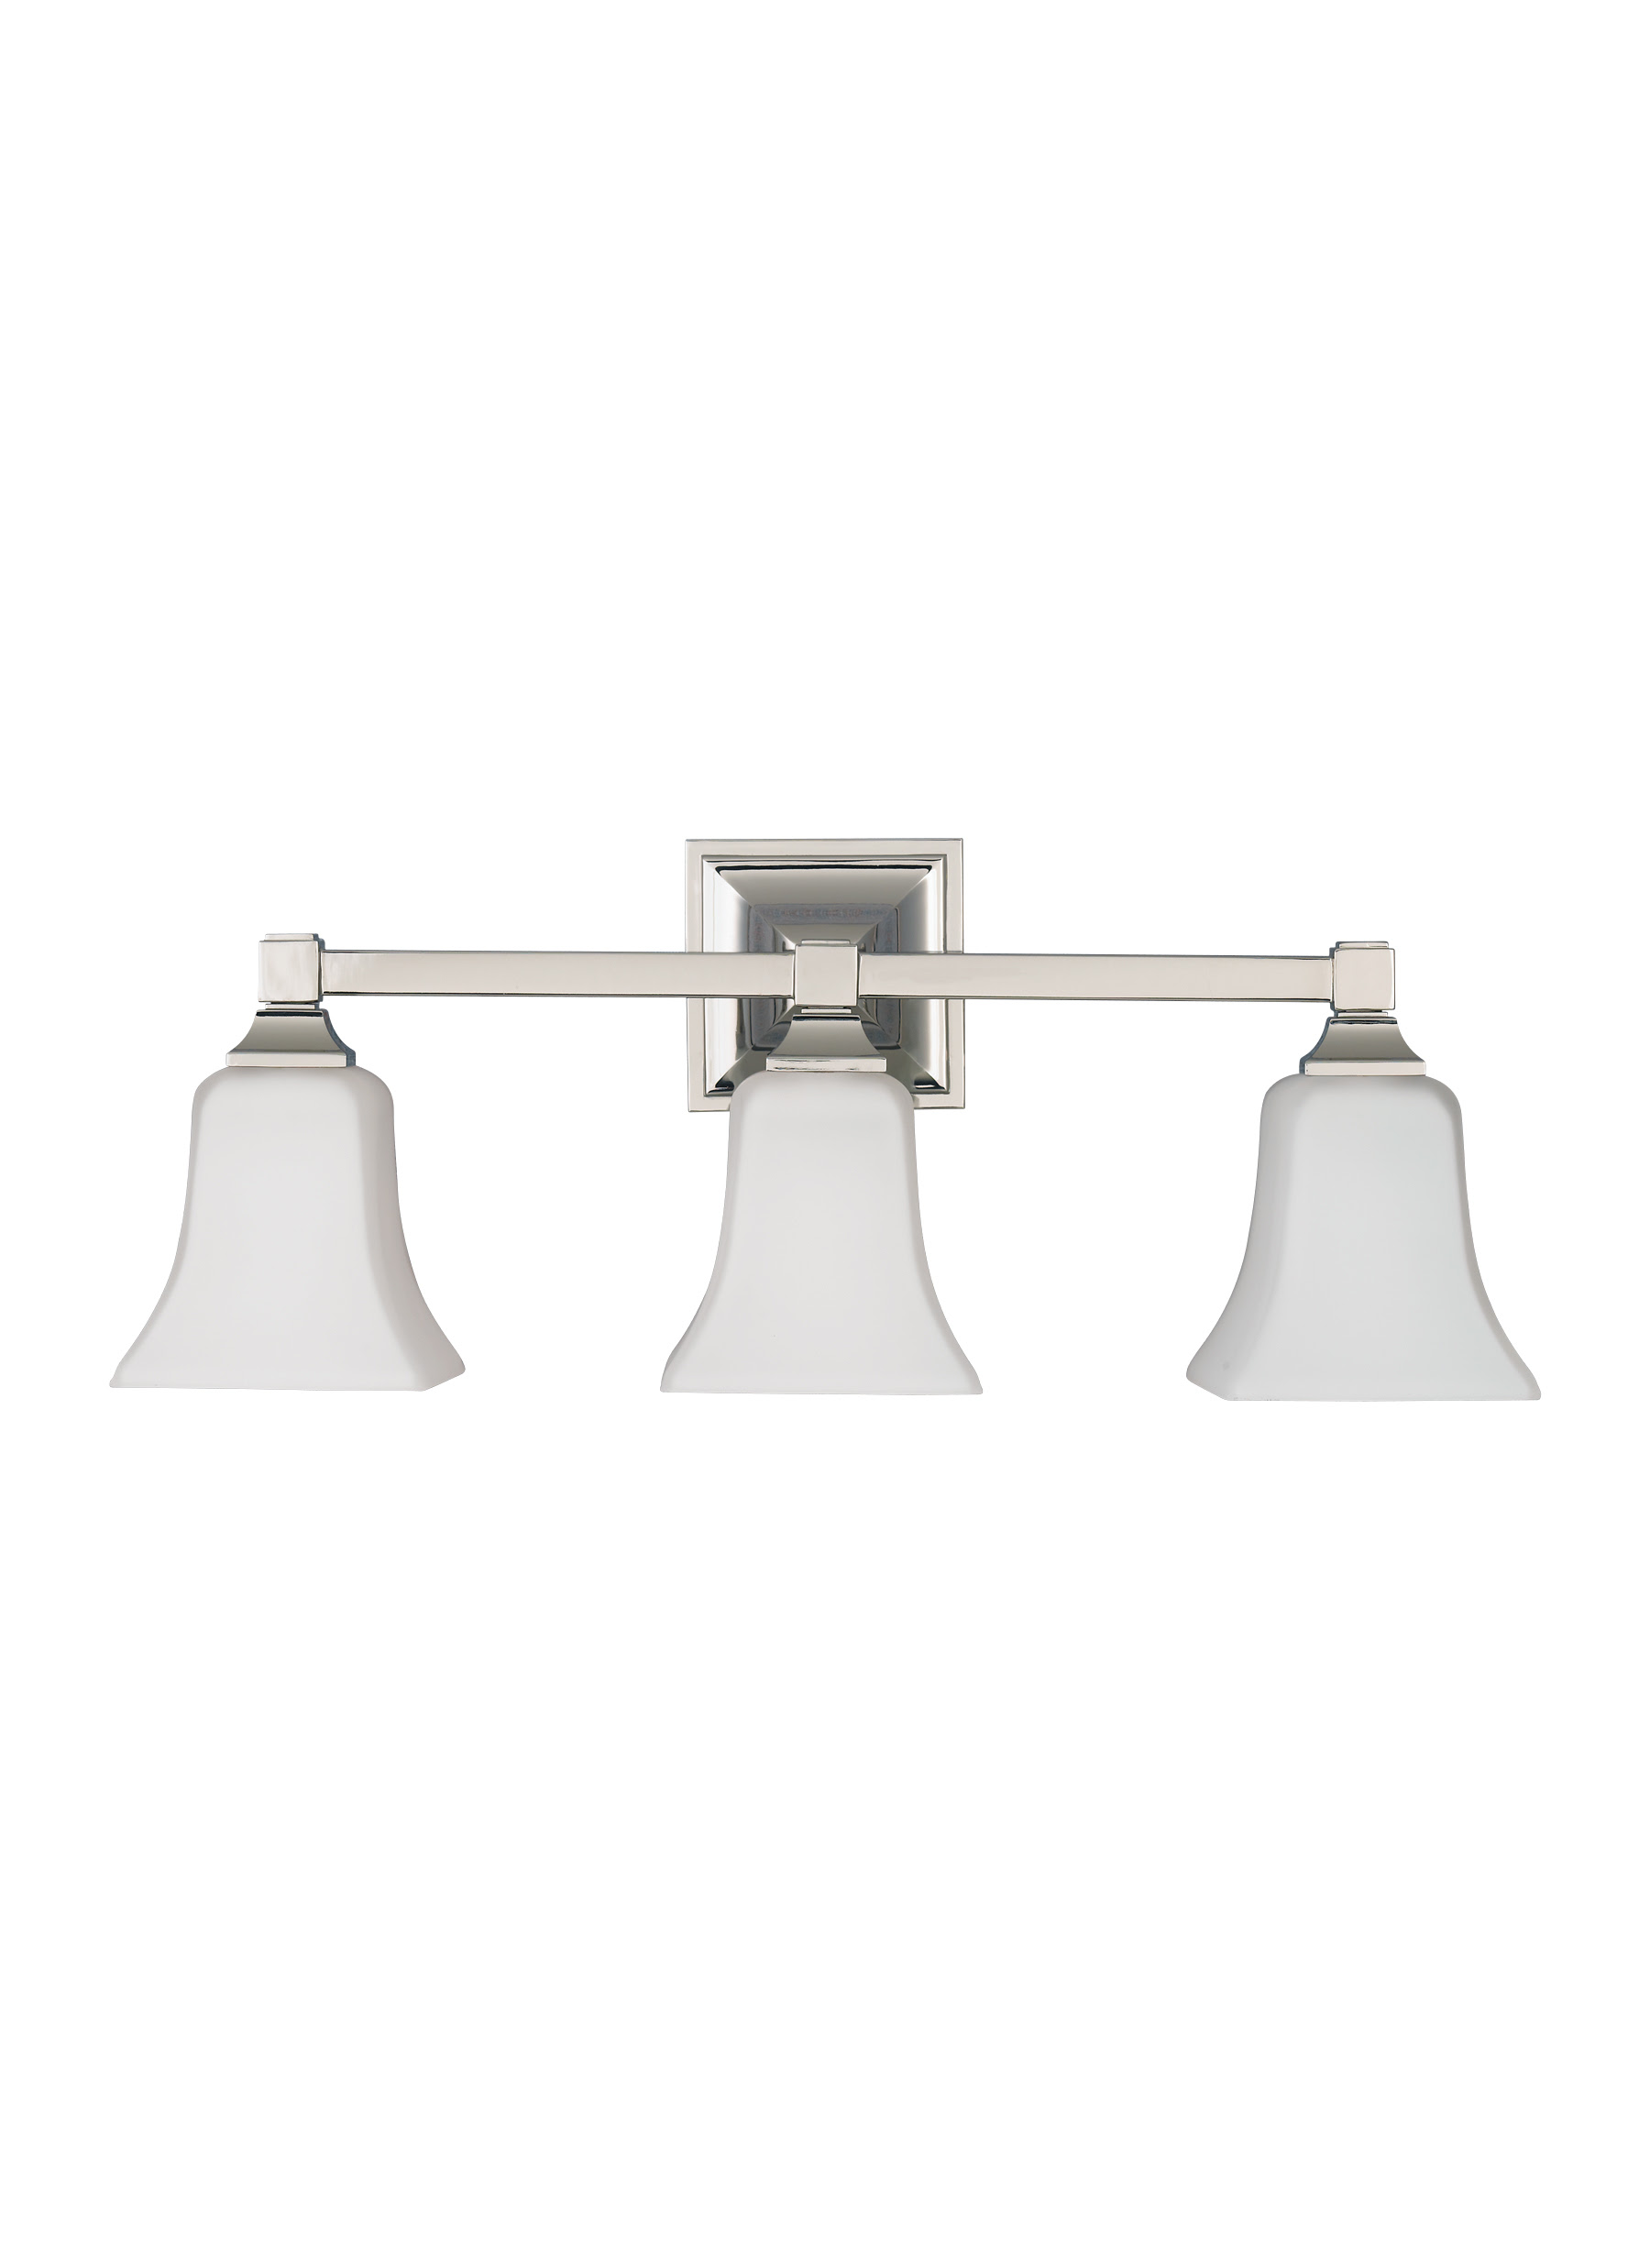 Vs12403 Pn3 Light Vanity Fixturepolished Nickel